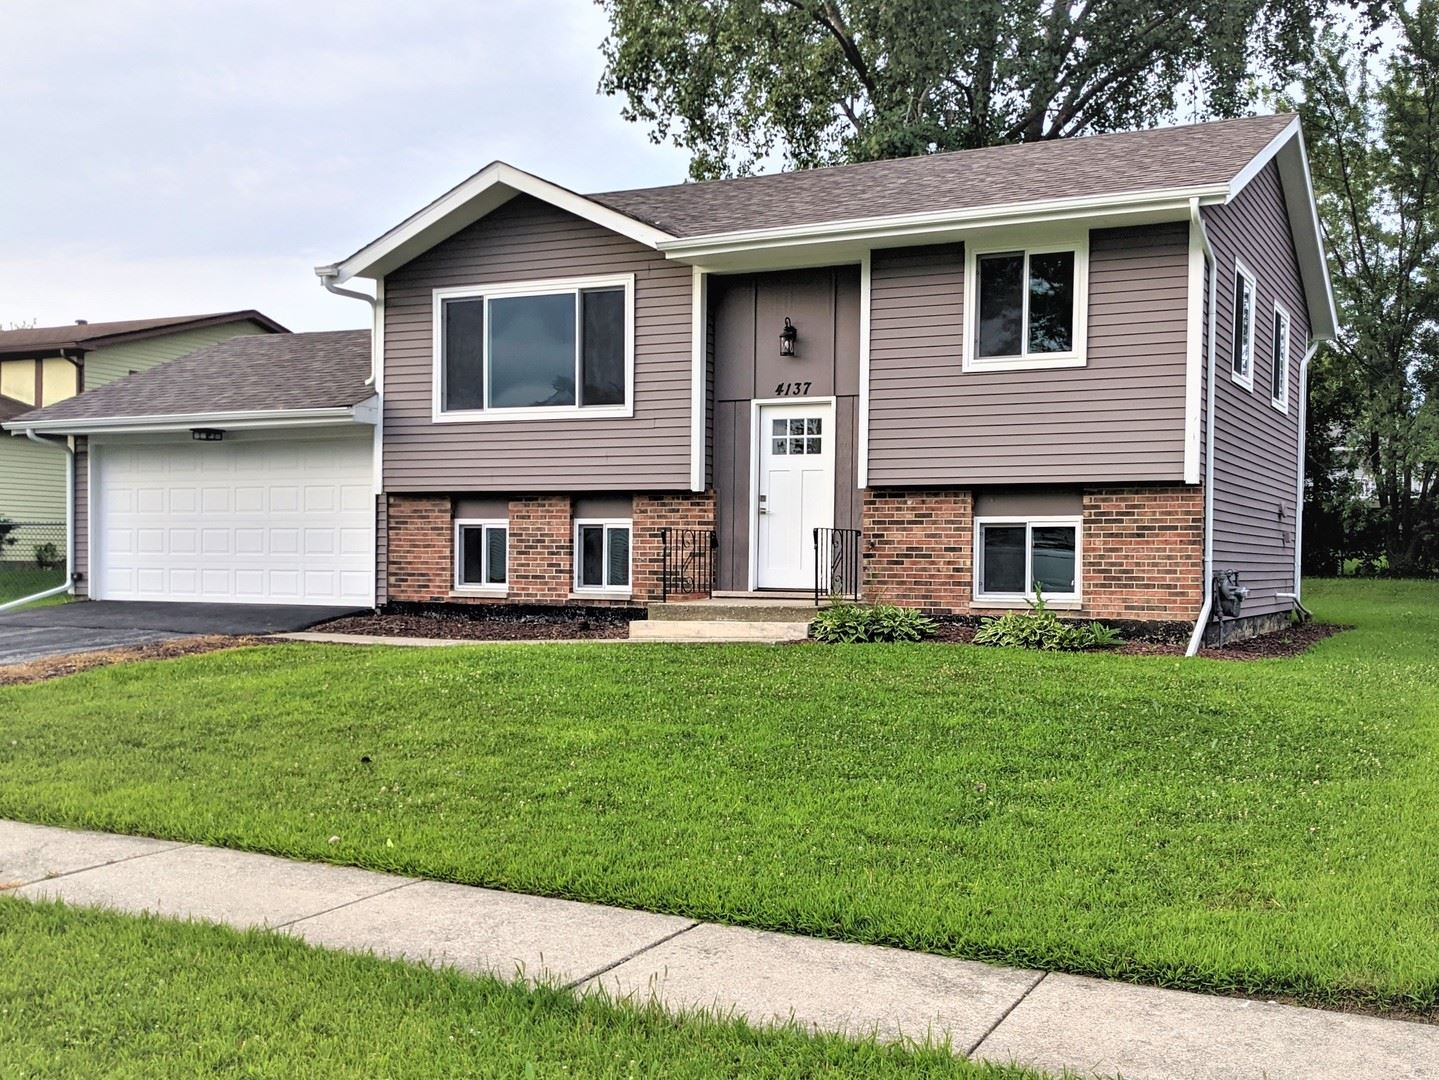 4137 187th Place, Country Club Hills, IL 60478 - #: 10801288